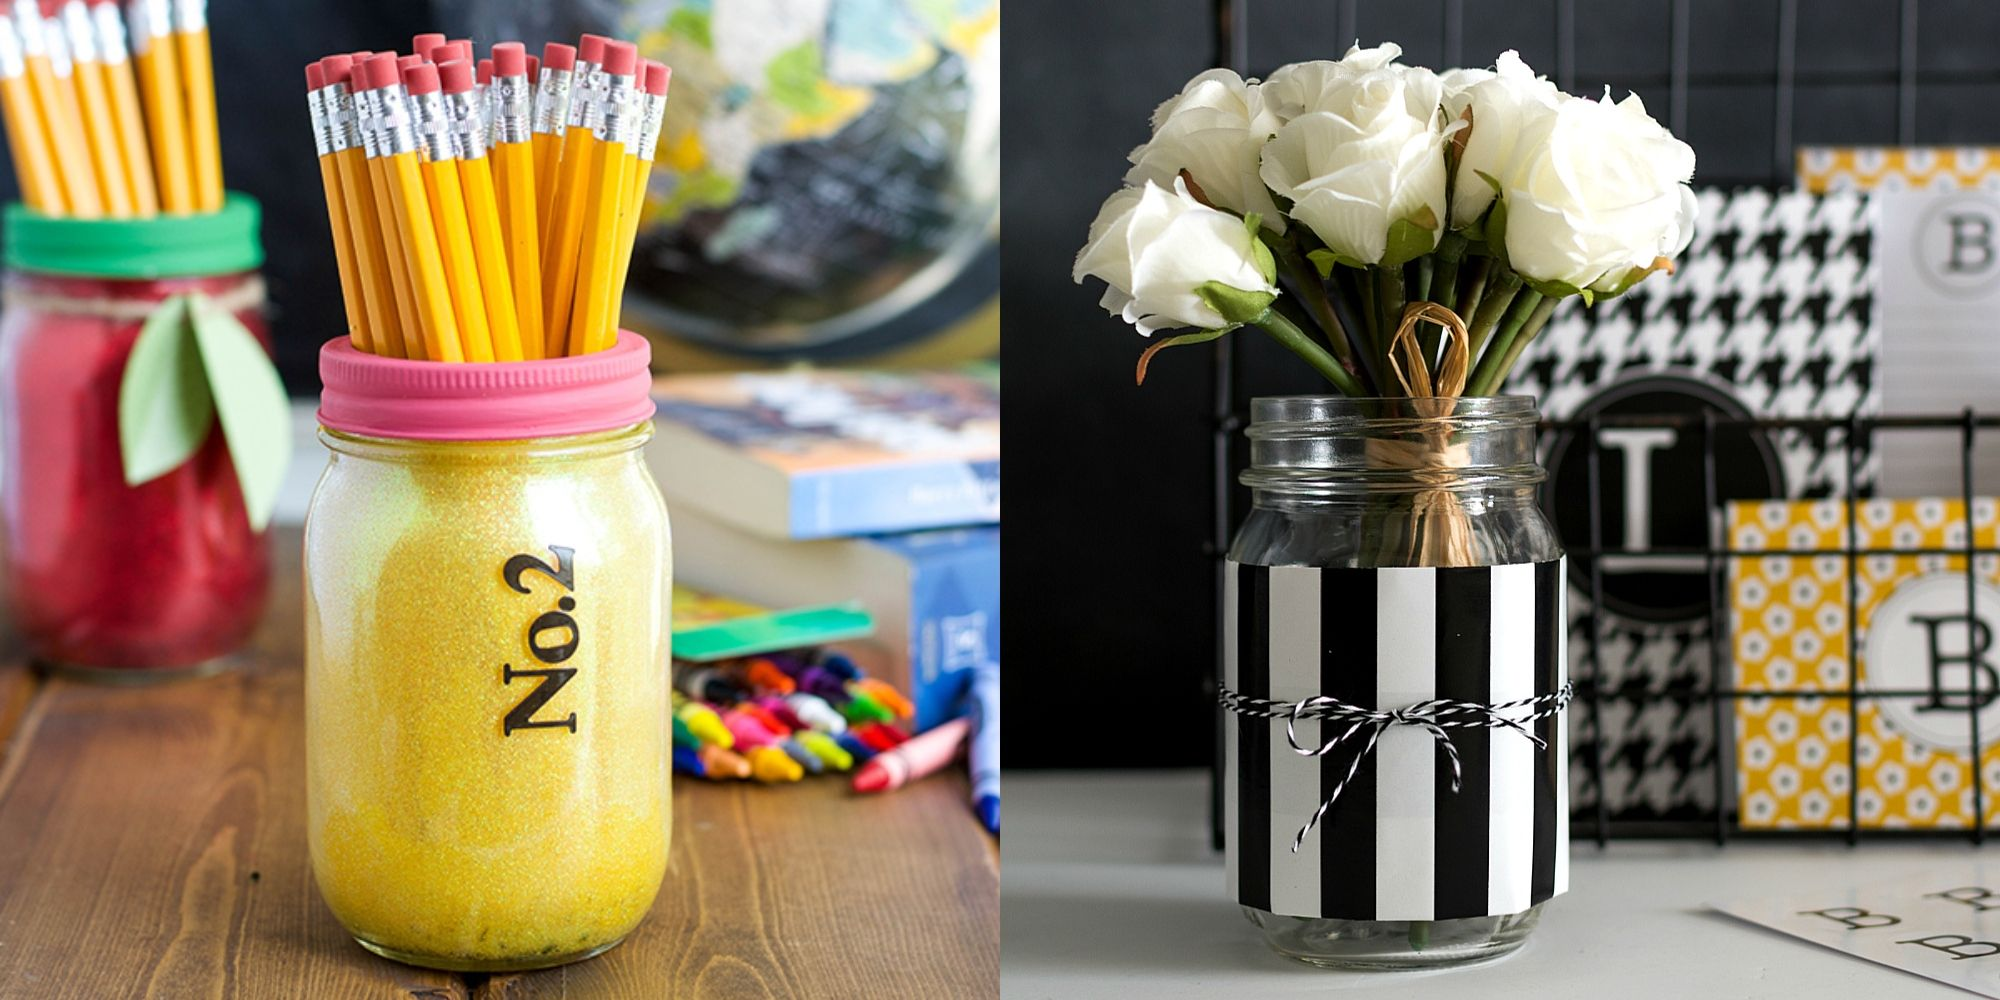 65 Brilliant Mason Jar Decor Ideas That Go Way Beyond Flower Vases